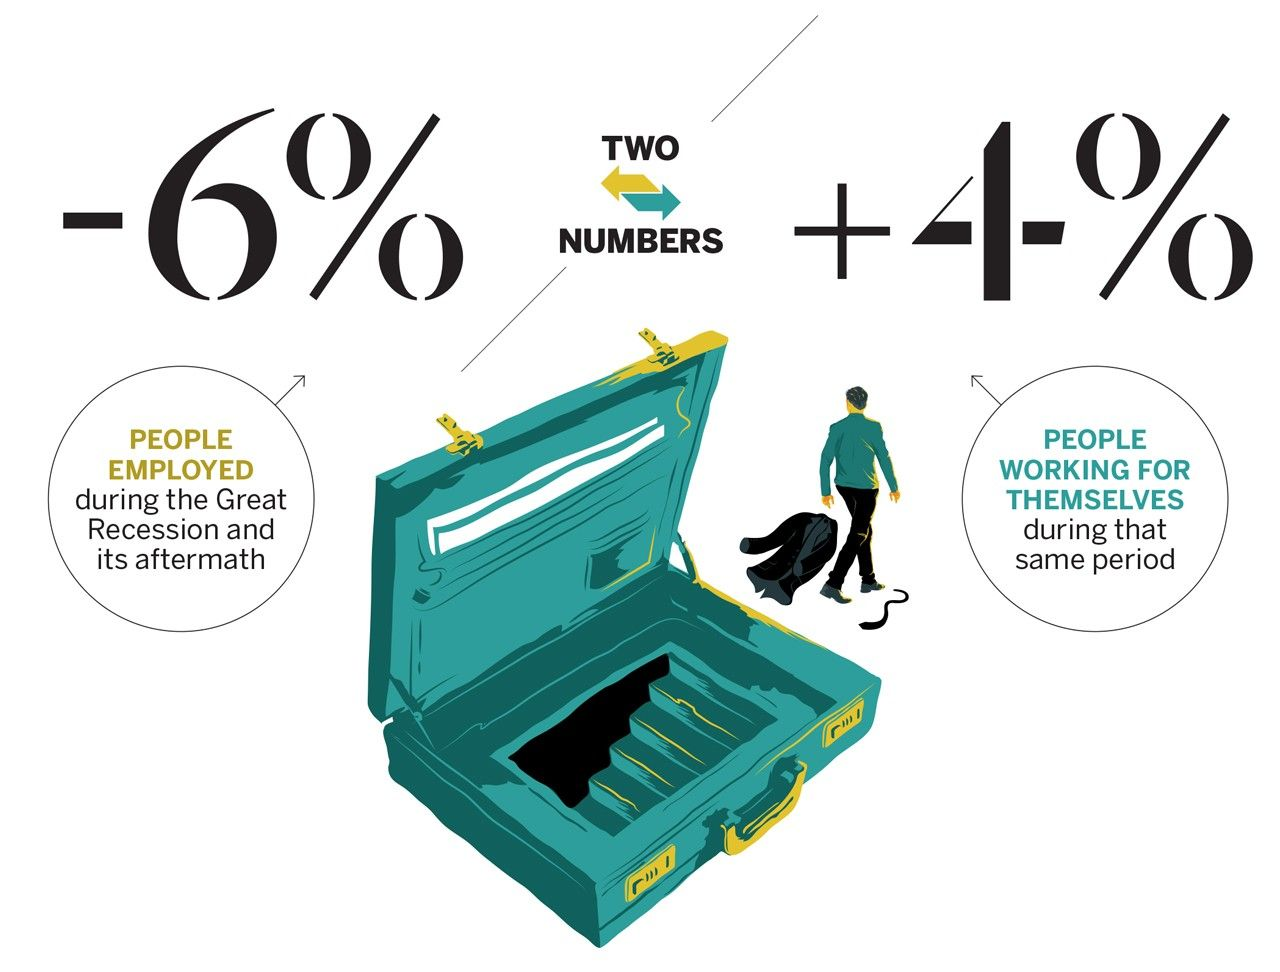 Two Numbers Employed vs Self-Employed